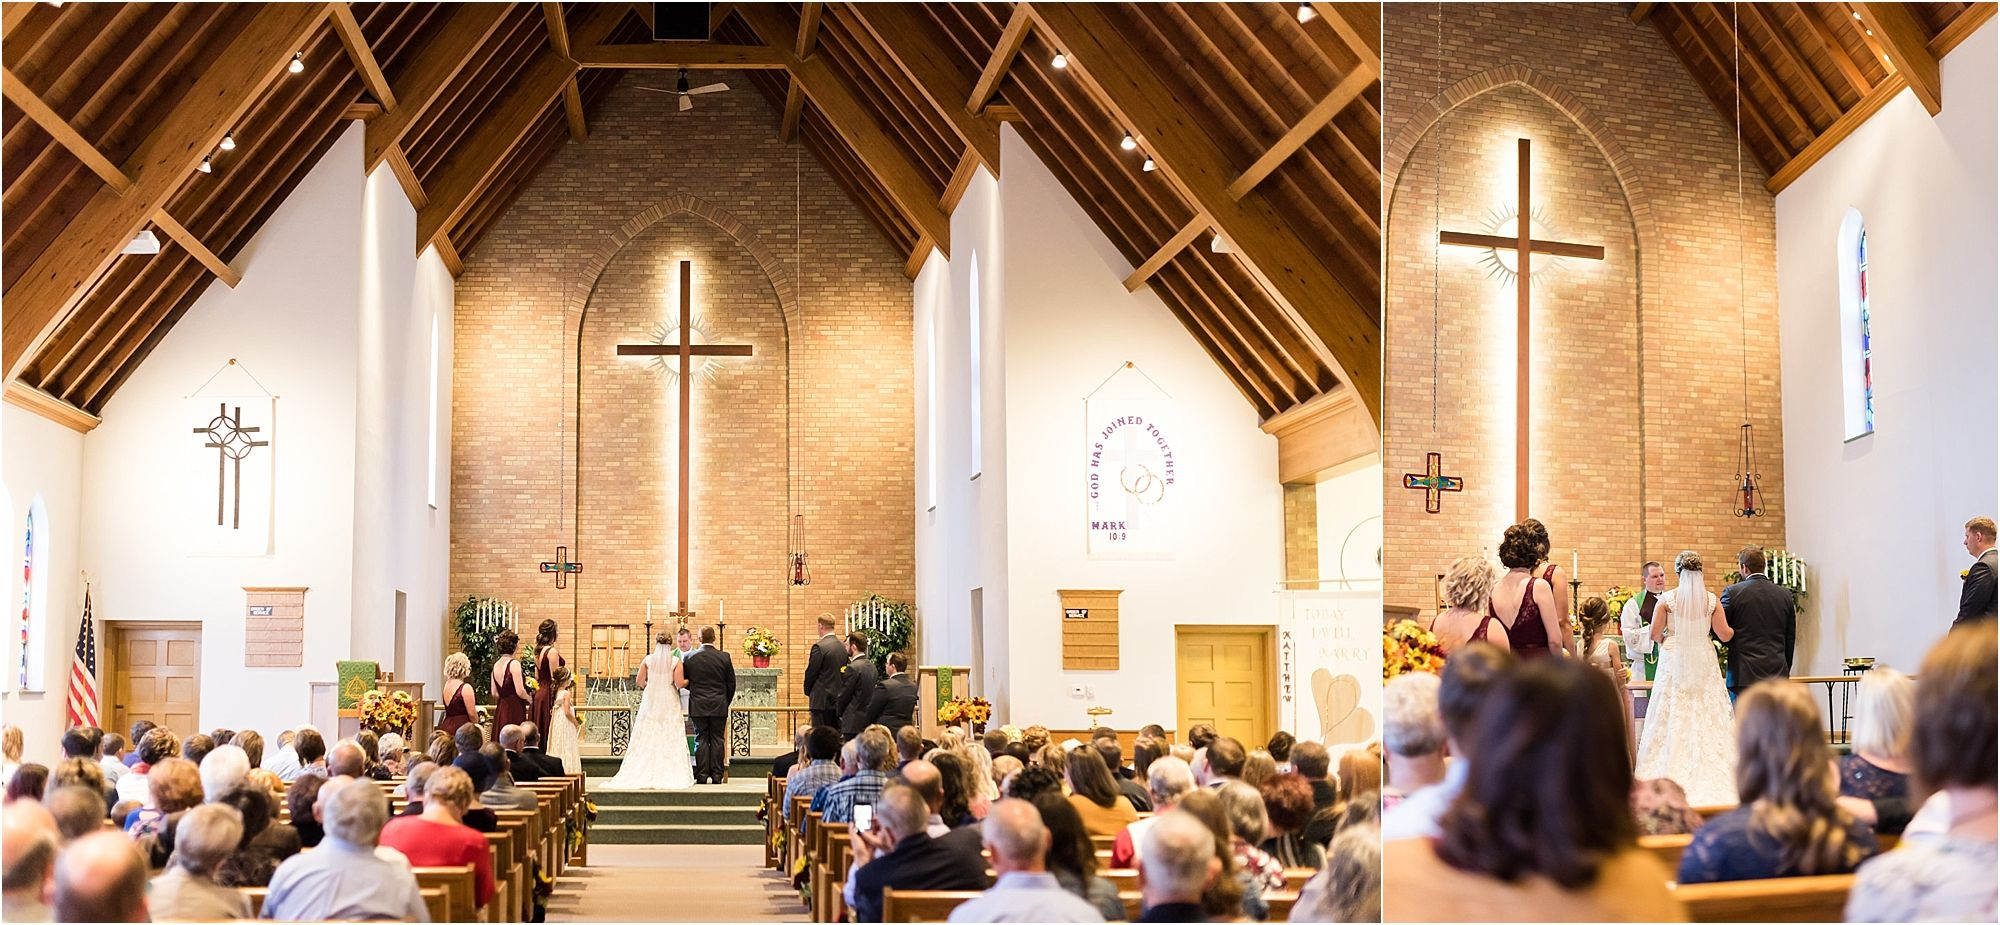 church wedding wide angle shot - maddiepeschong.com #wideangle